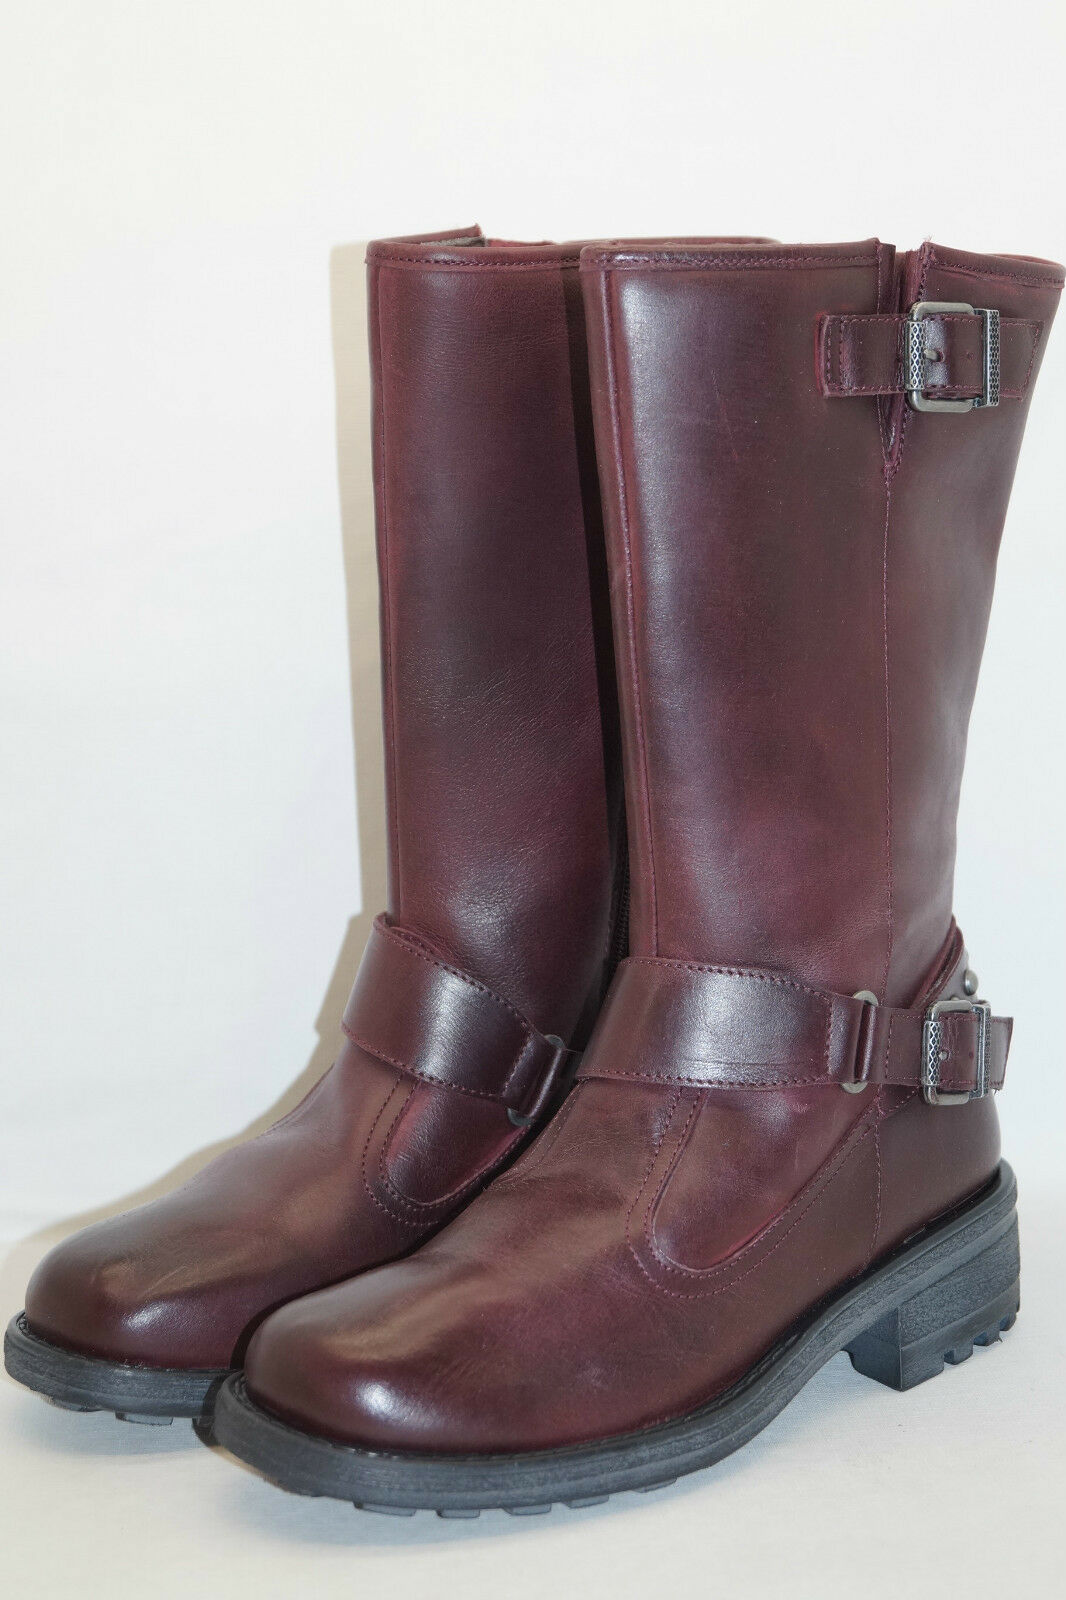 B.C. Best Connection by Heine Stiefel Gr.35 UK 2,5 USED-LOOK bordeaux rot Leder